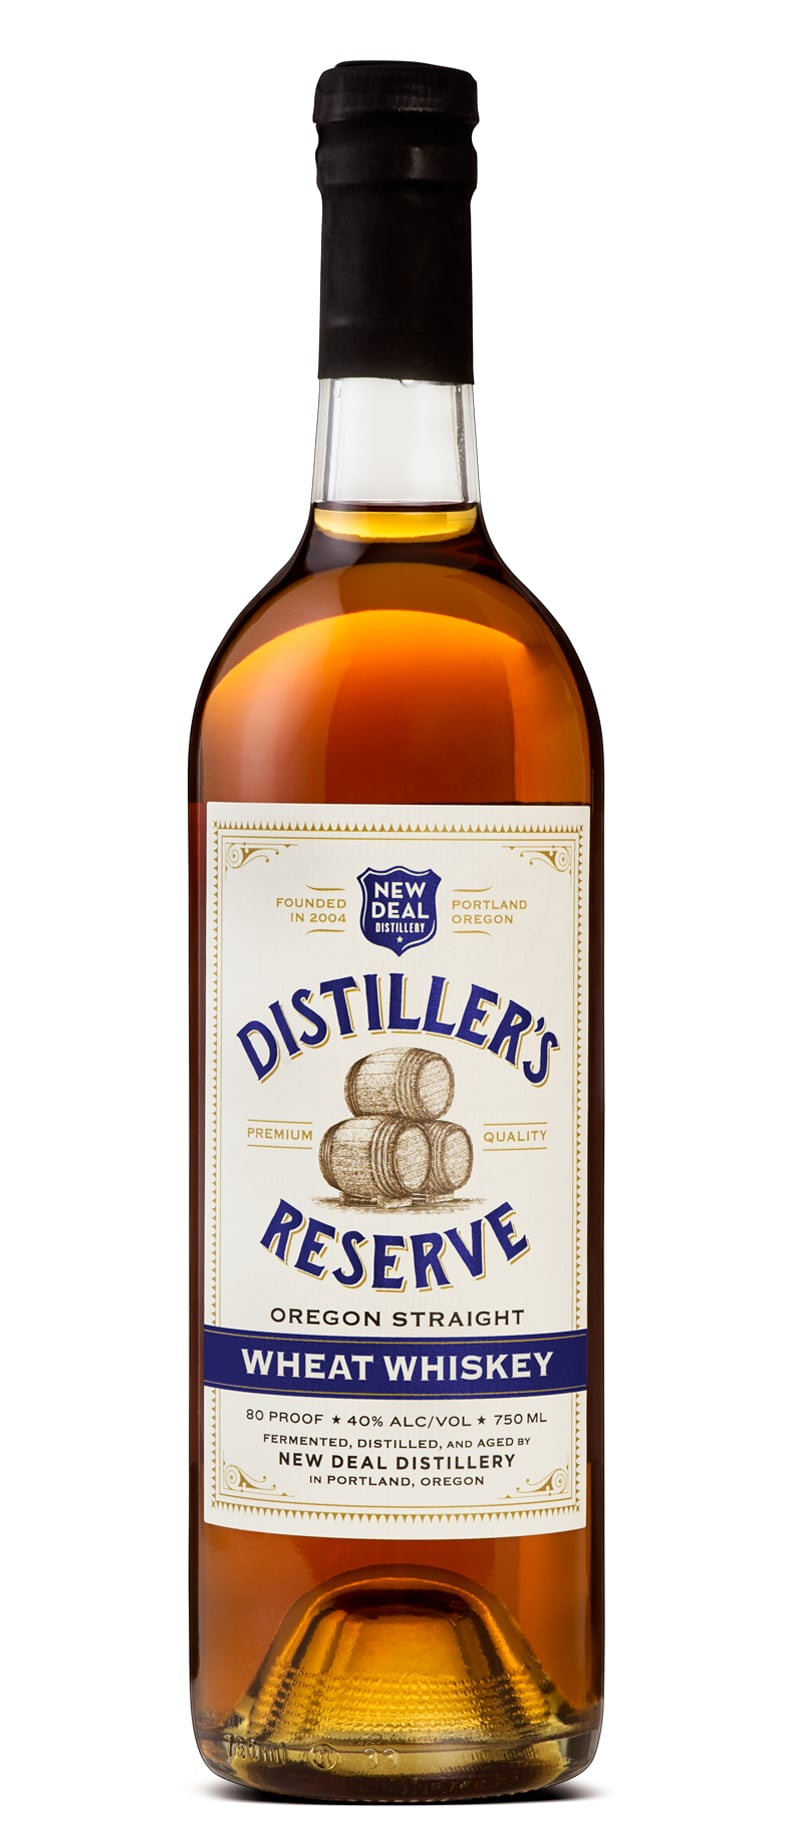 New Deal Distiller's Reserve Oregon Straight Wheat Whiskey